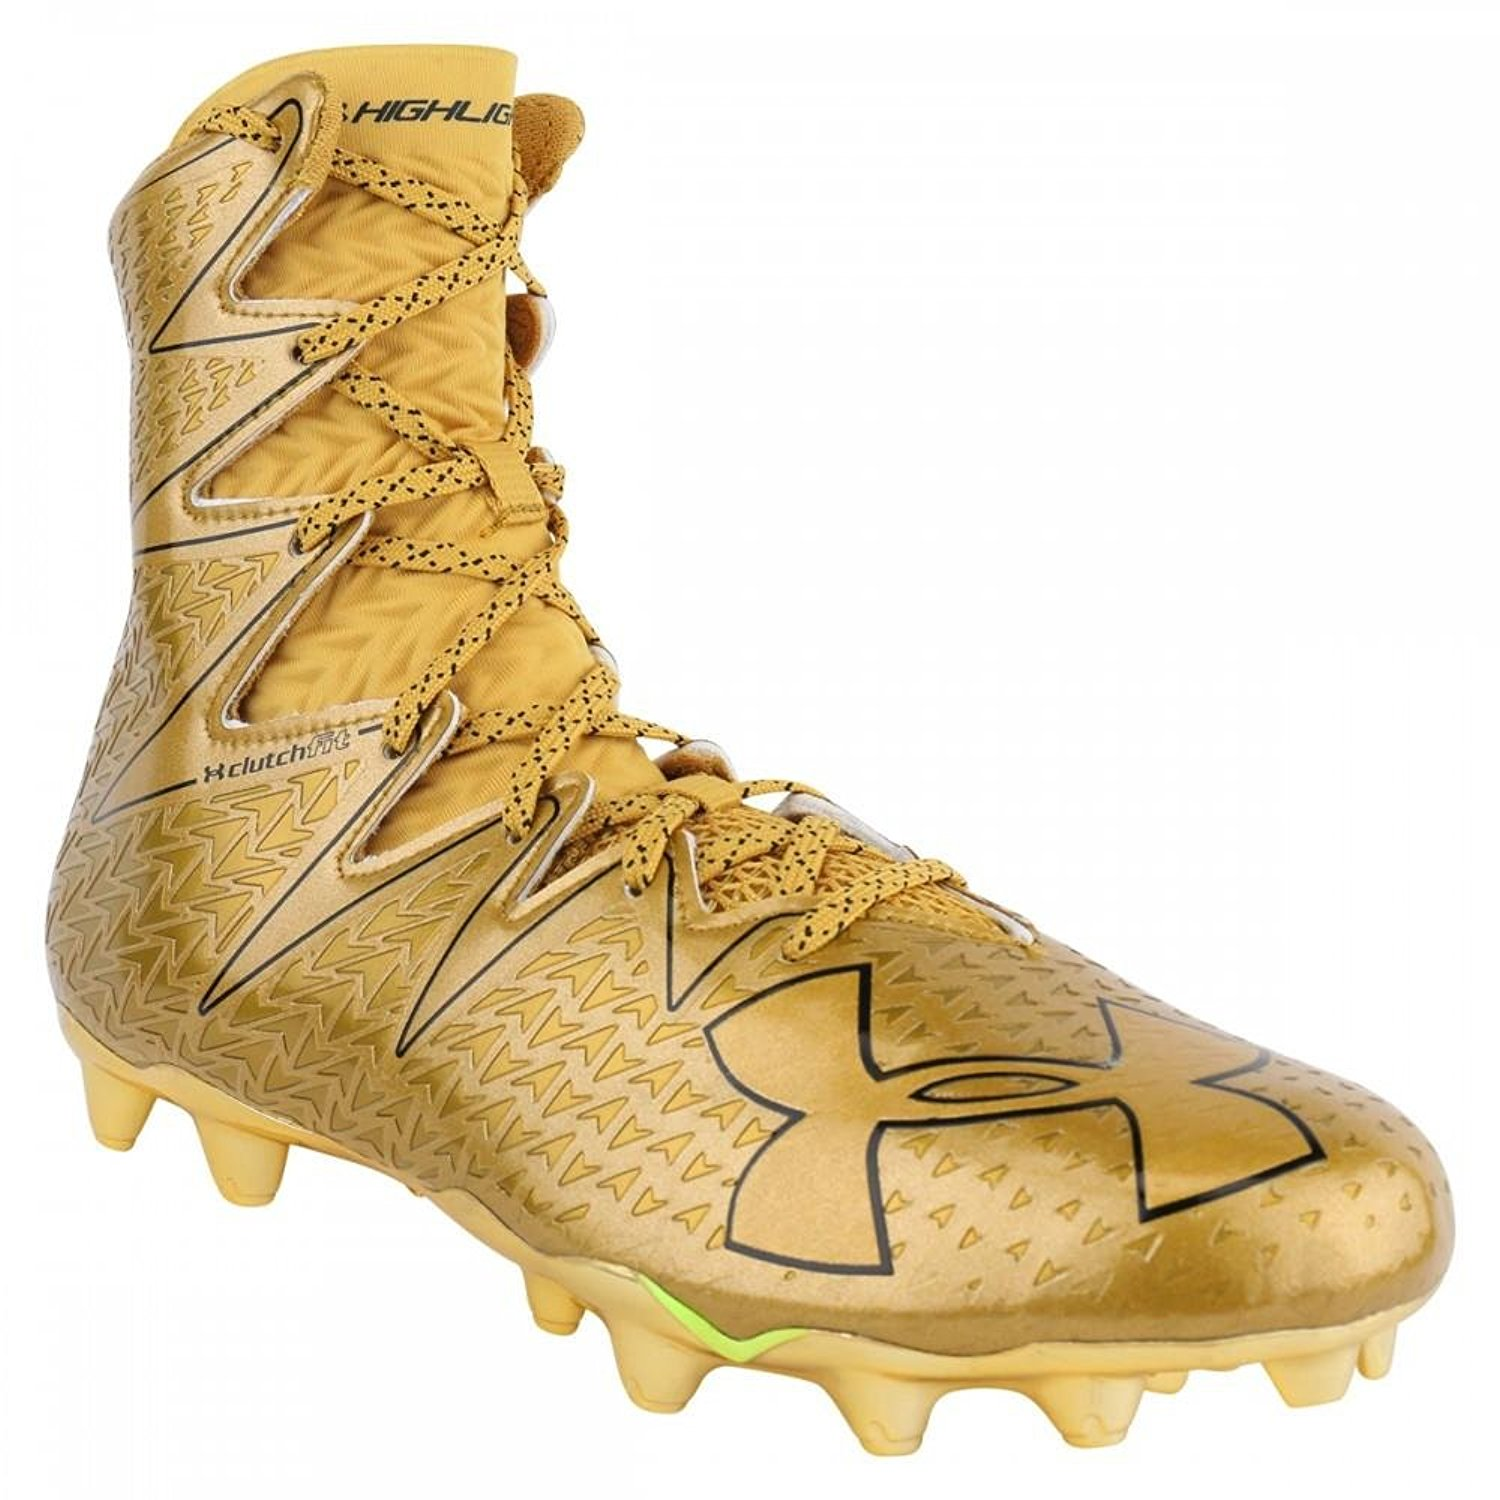 Under Armour Under Armour Highlight Mc Football Cleat 12 D M Us